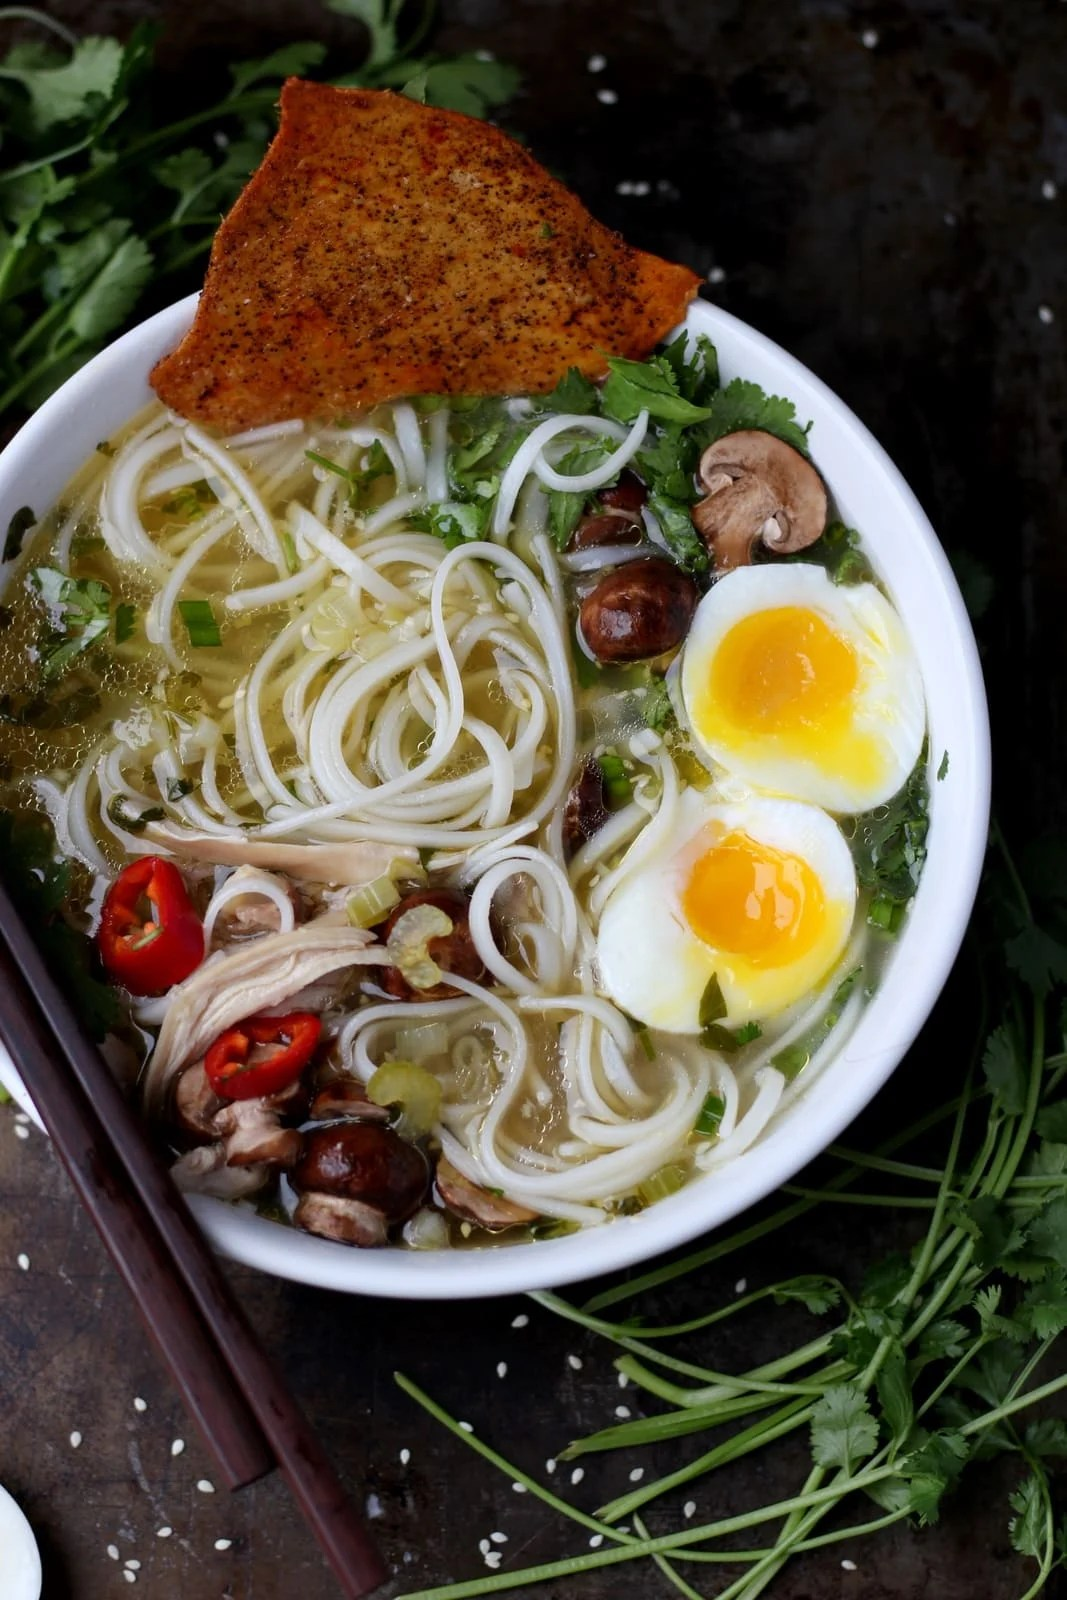 Chicken Ramen Noodle Soup + Crispy Chicken Skins - awesome recipe for ramen that uses rice noodles or ramen noodles. So savory and so many variations! thewoodenskillet.com #foodphotography #ramen